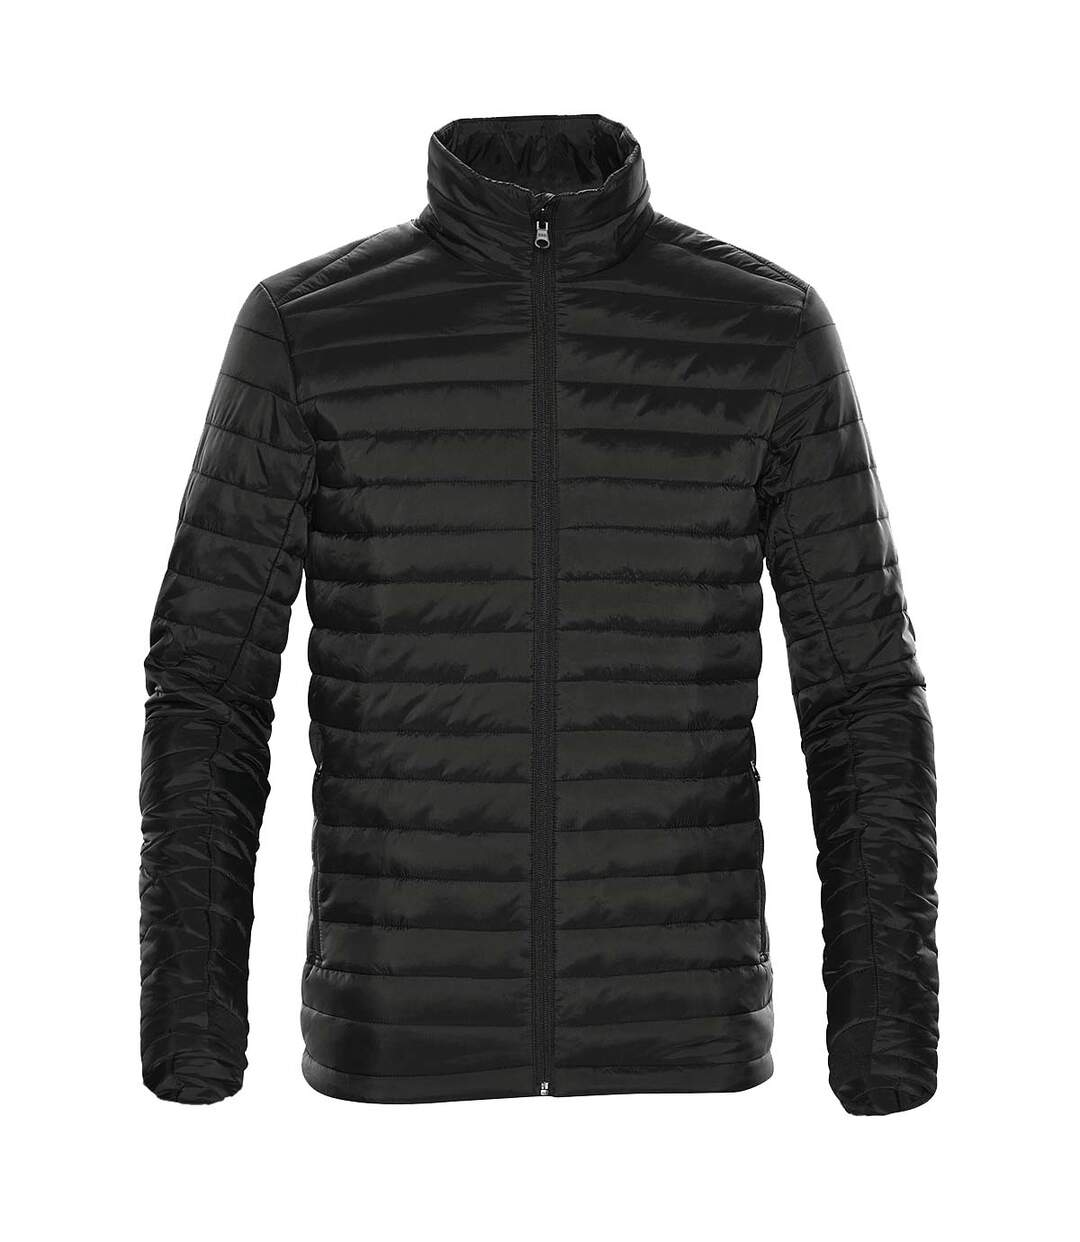 Stormtech Mens Matrix System Jacket (Navy/Navy) - UTBC4116